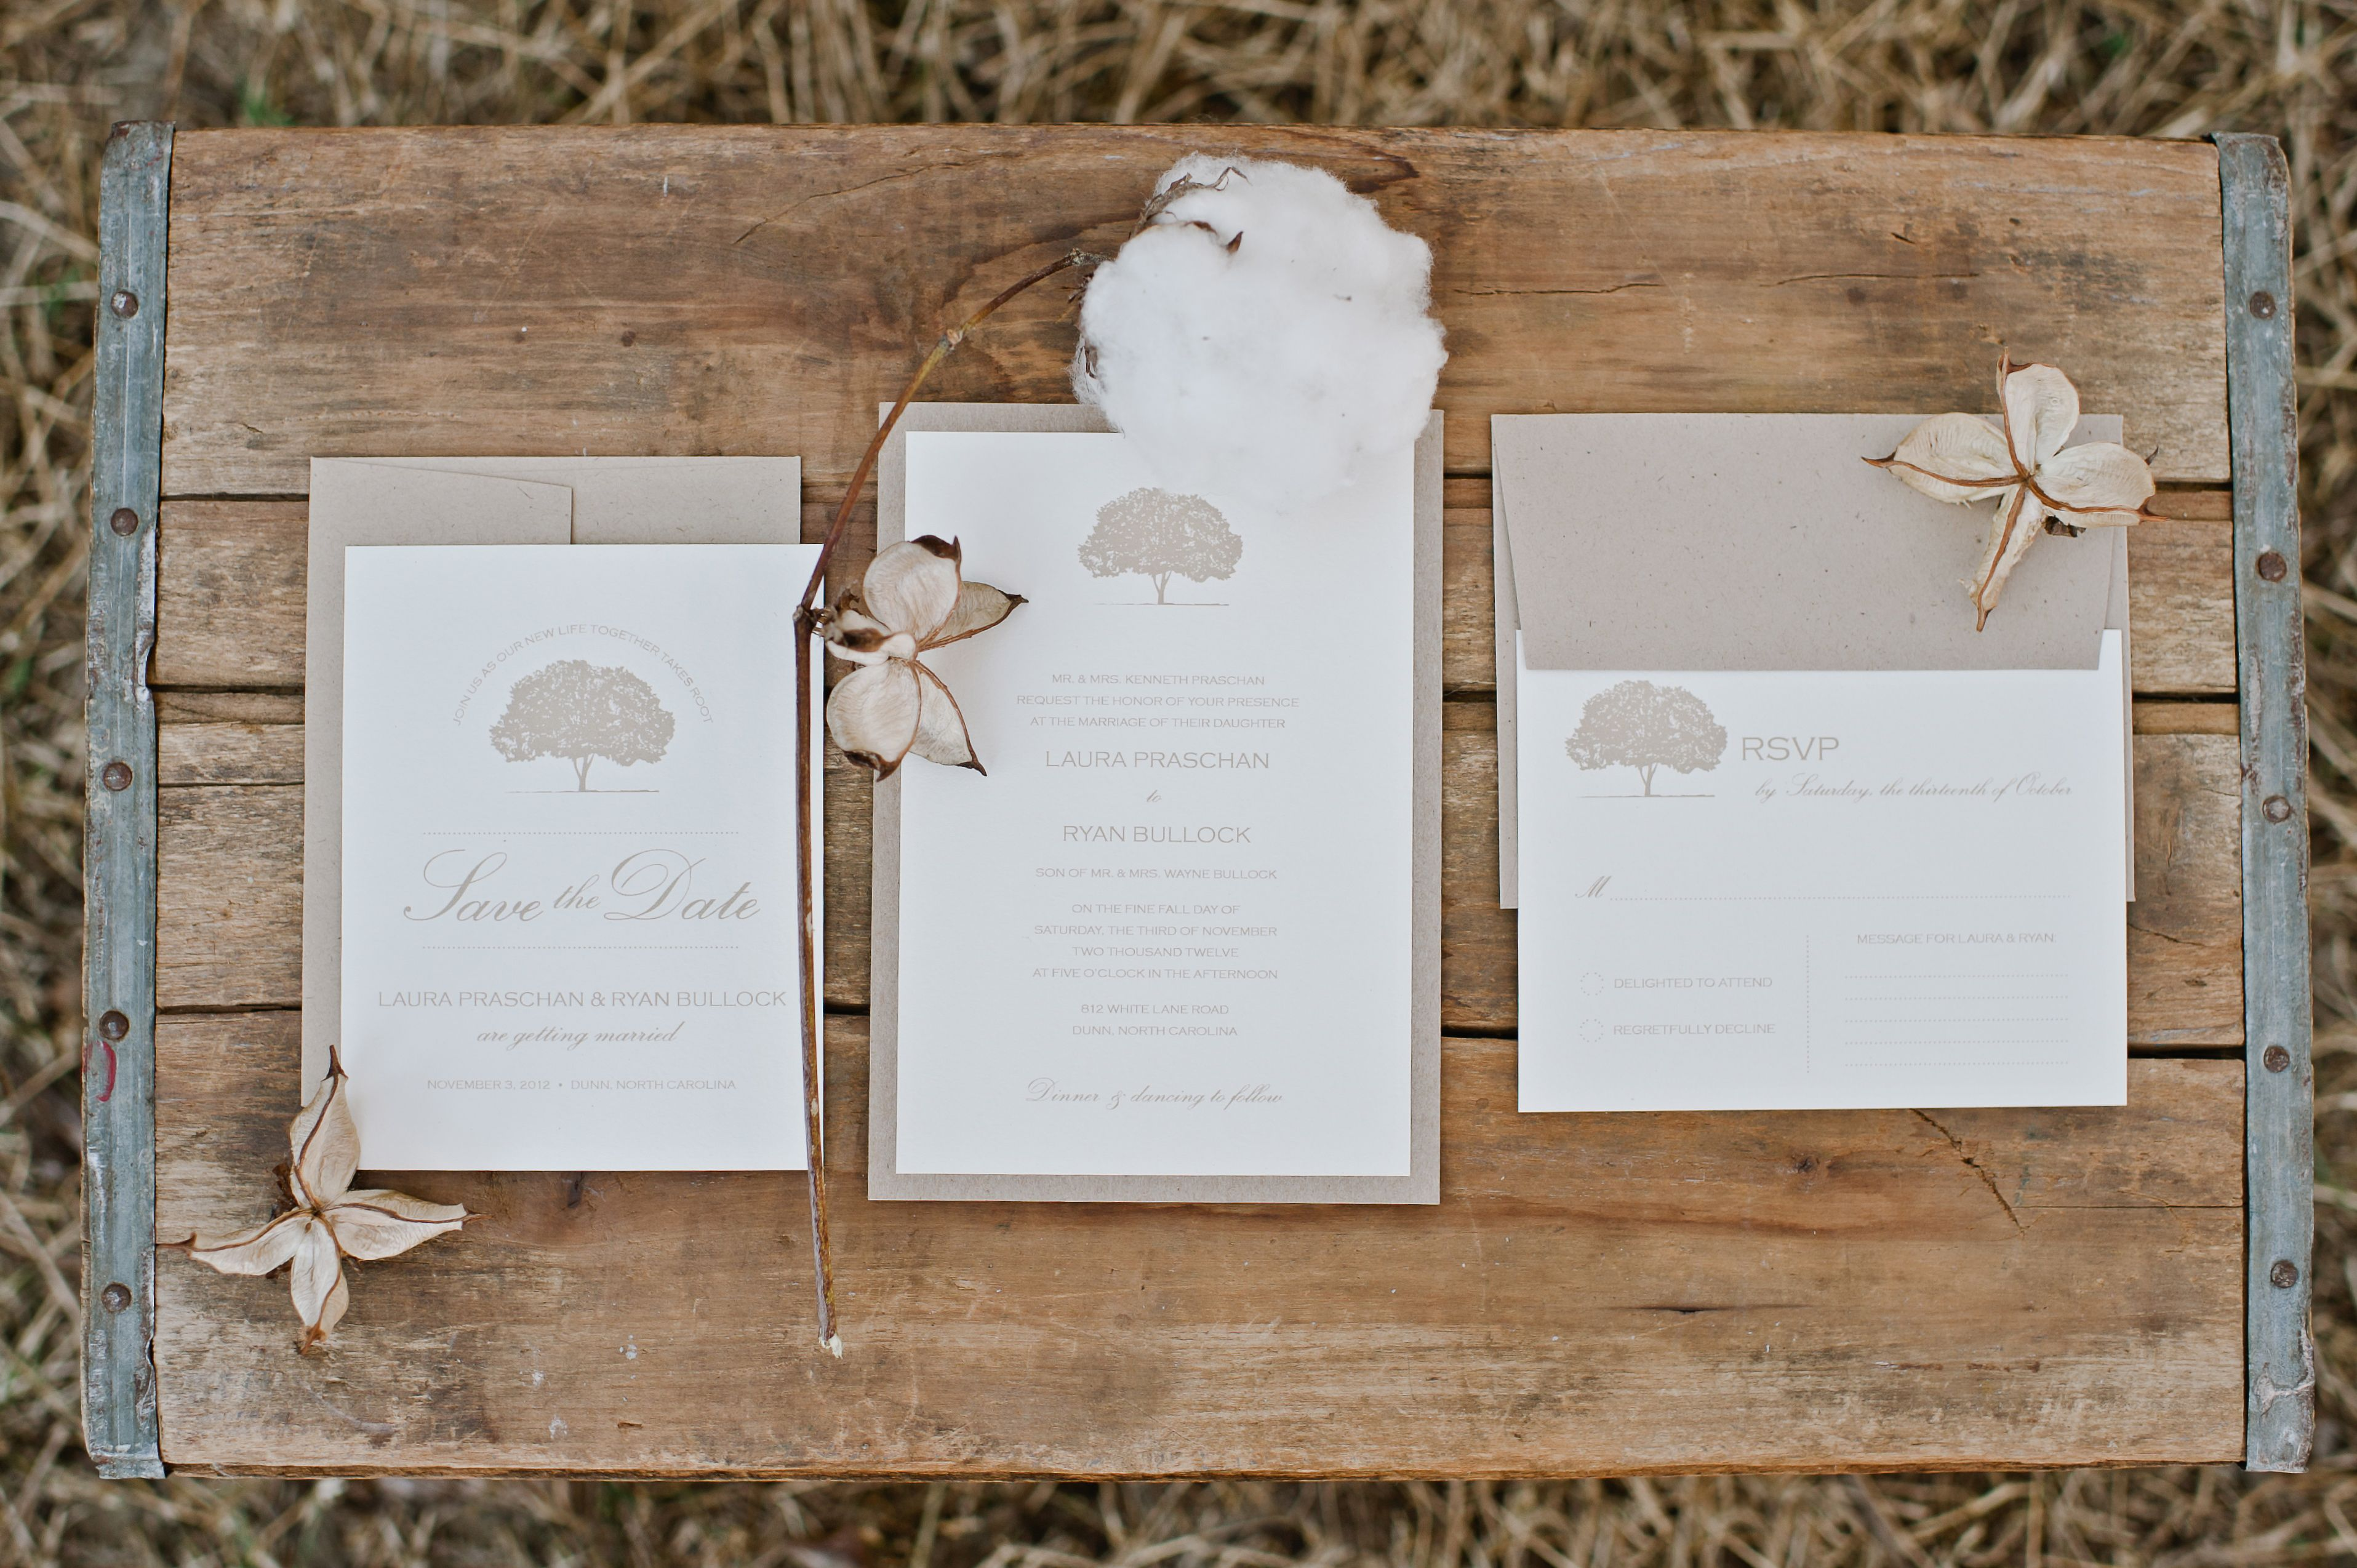 17 Best images about Rustic wedding invitations on Pinterest ...